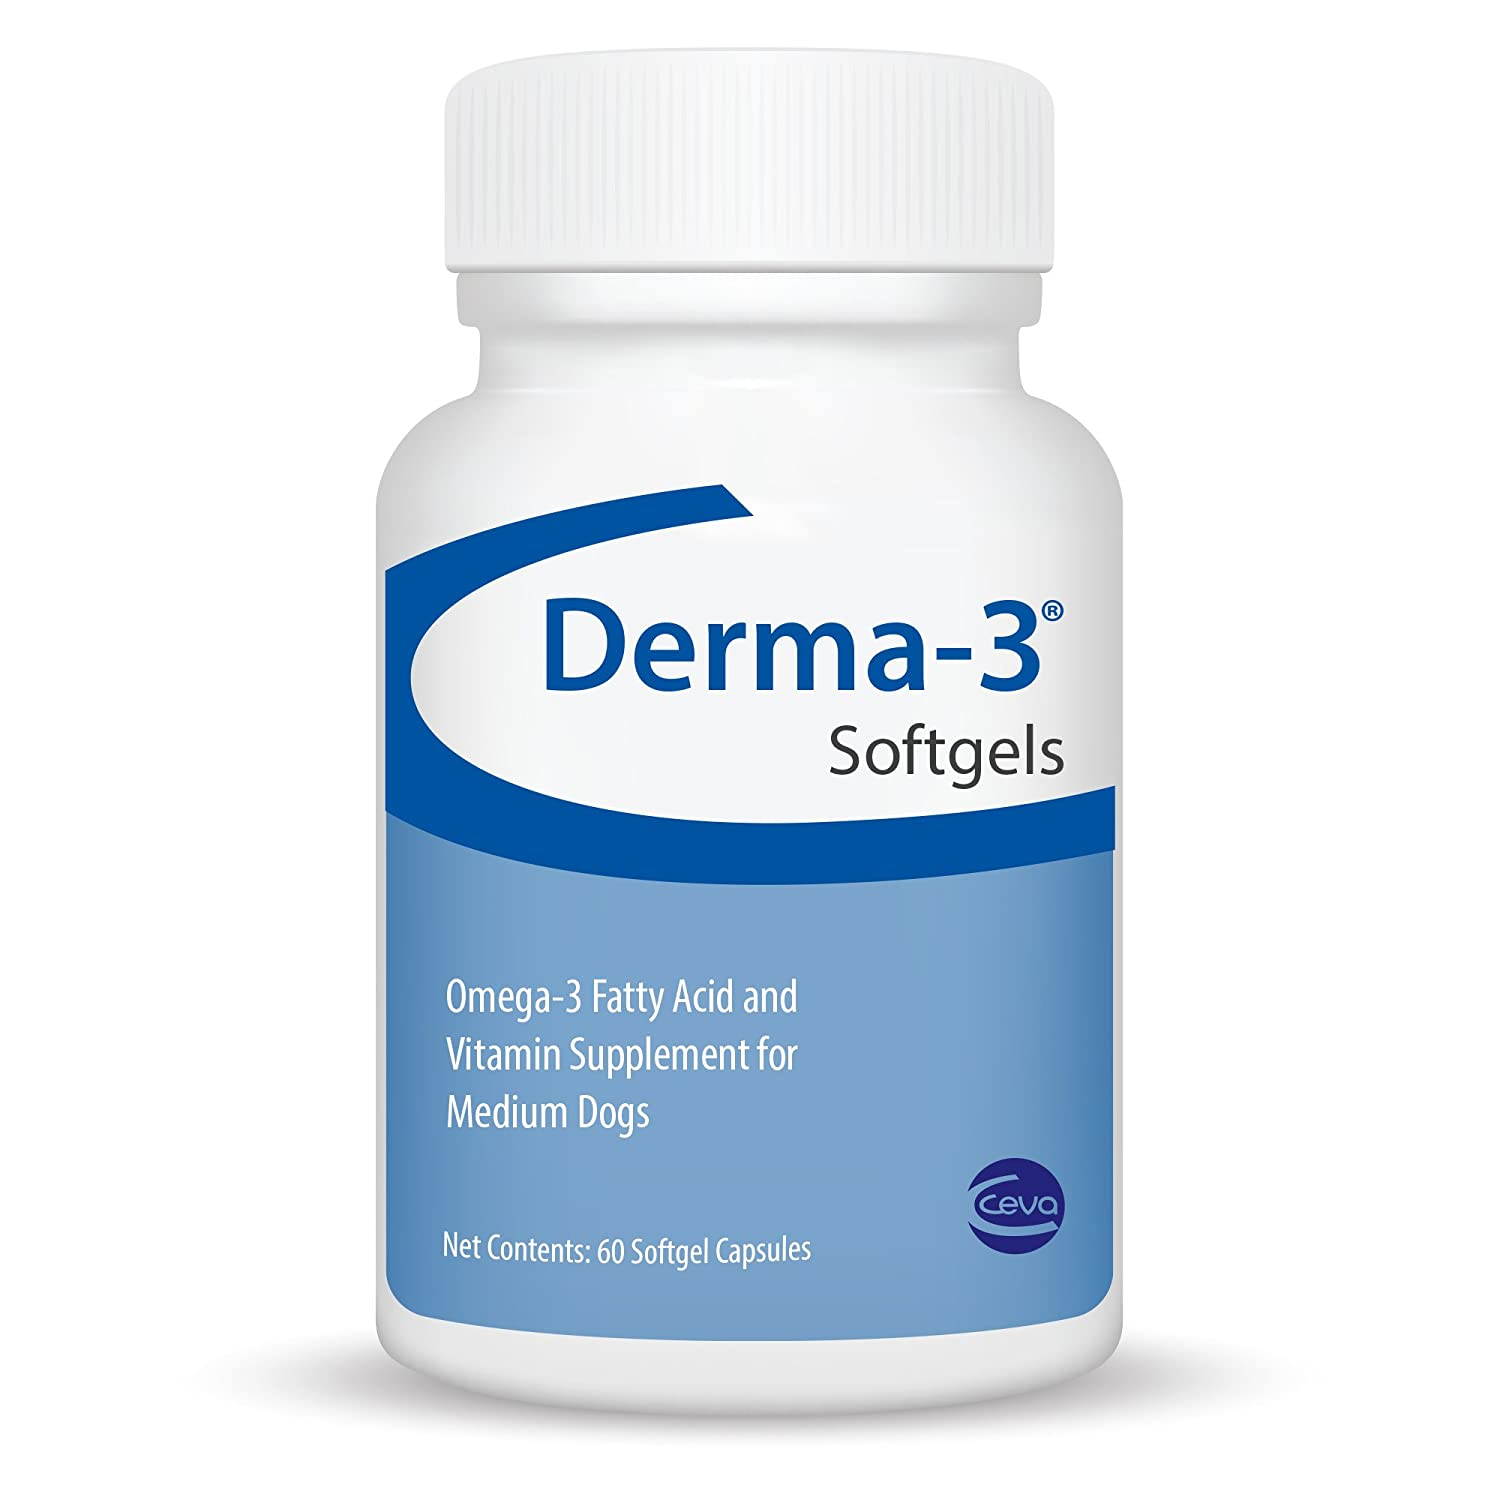 CEVA FNOME002060 Derma-3 Softgels, One Size